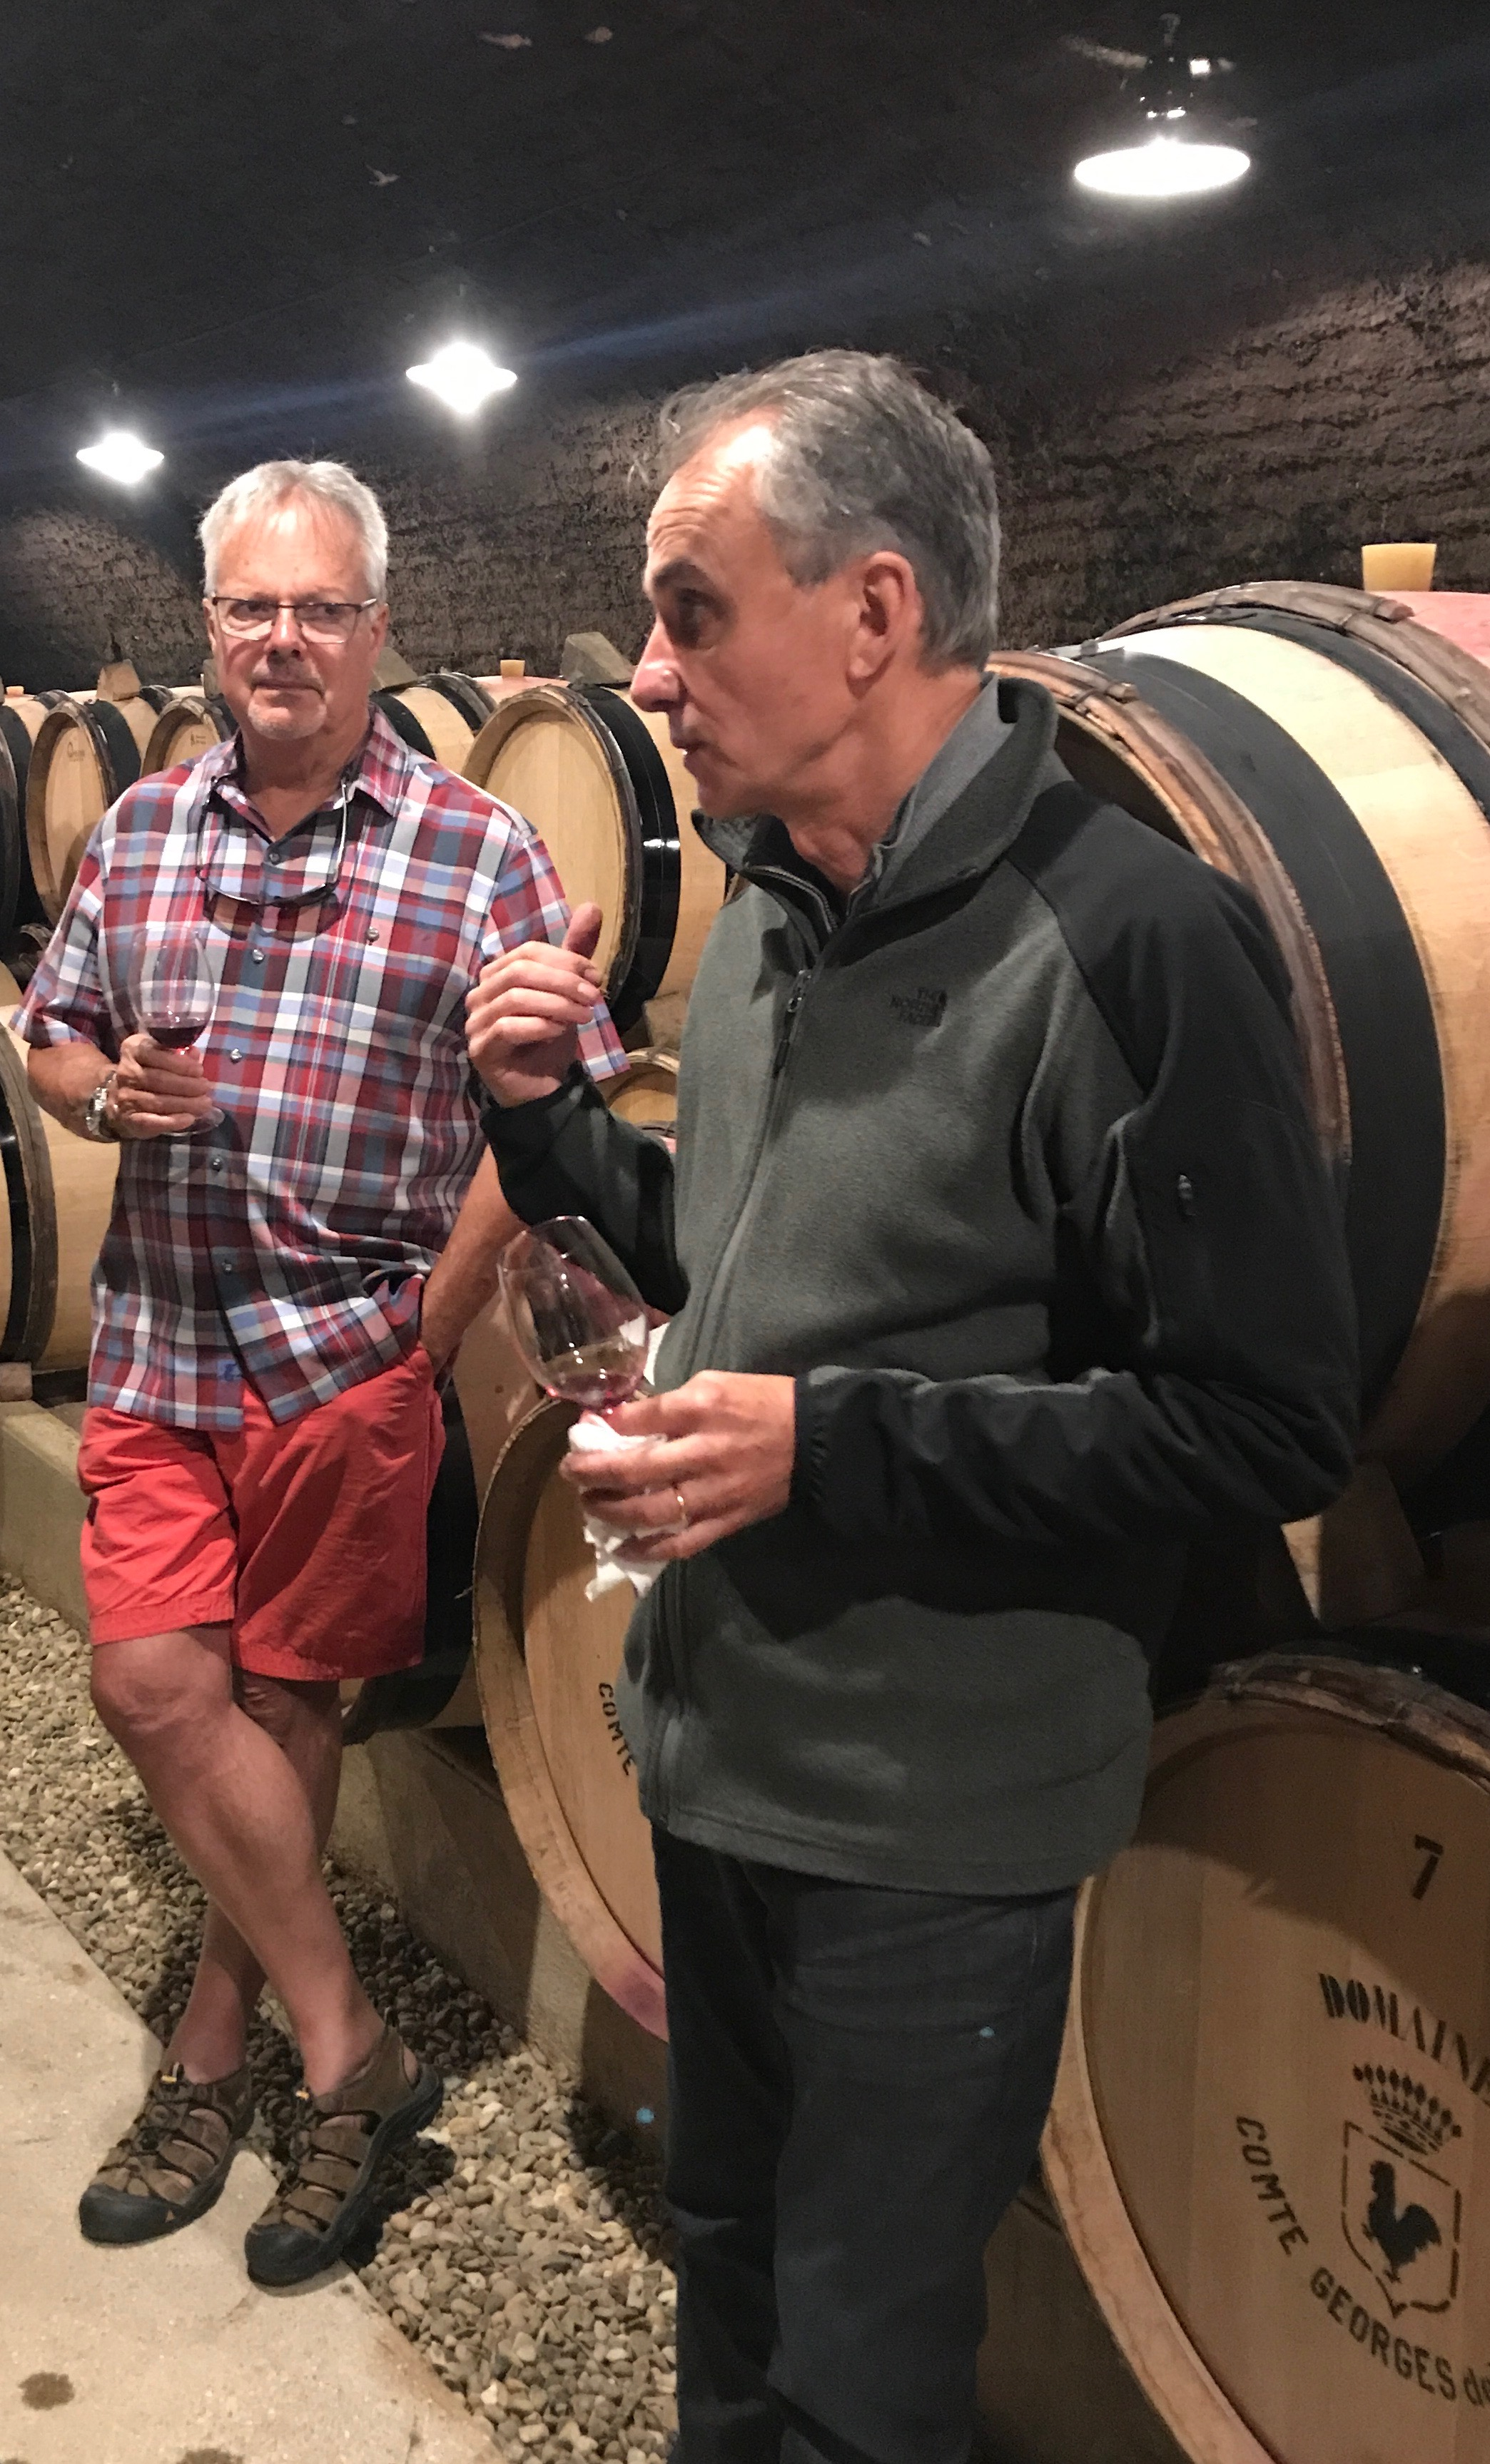 Tasting with the maestro himself,  François Millet  at  Domaine de Vogüé  in Chambolle-Musigny